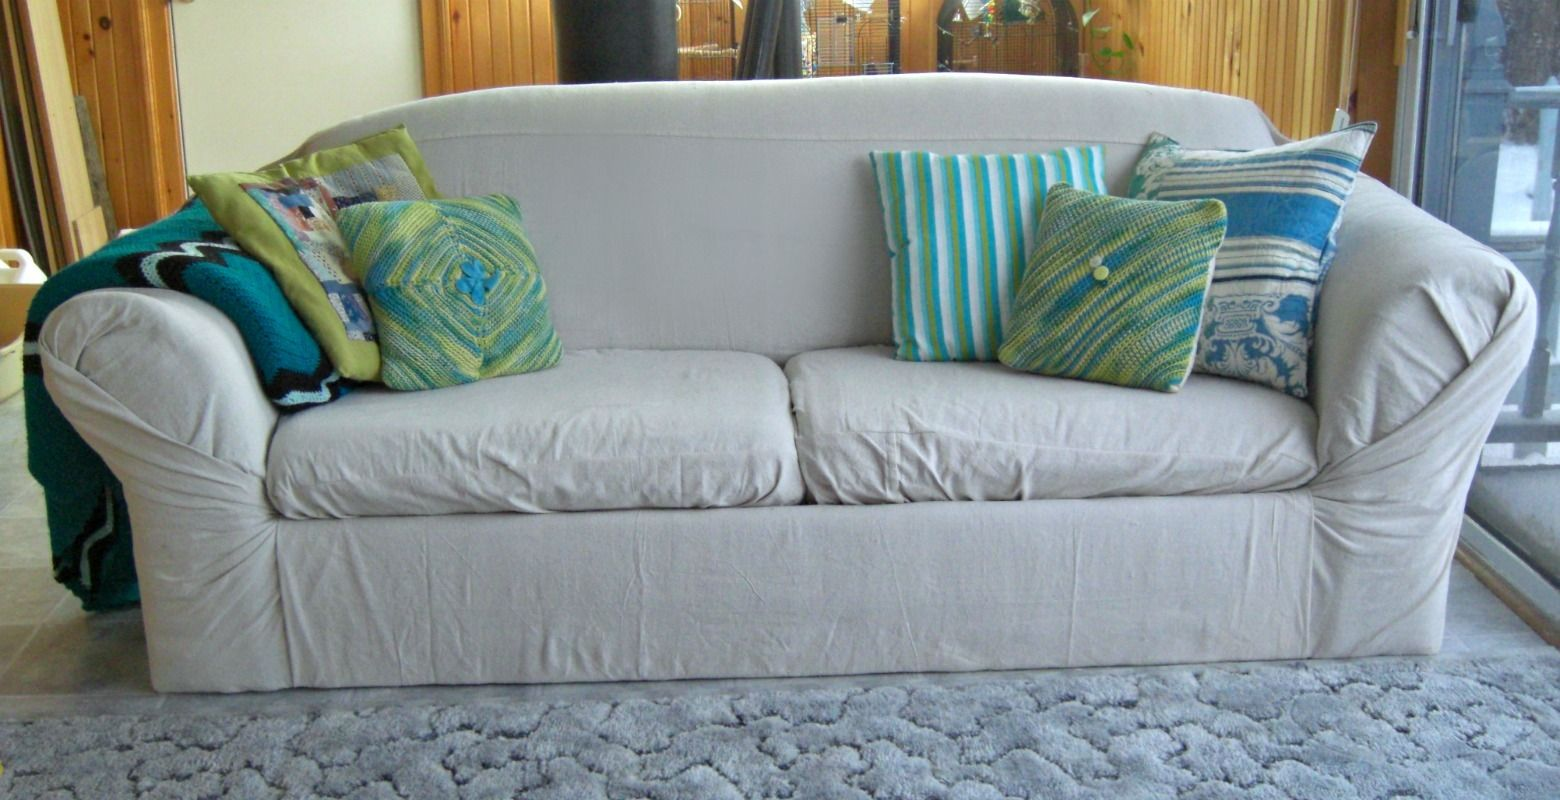 How To Recover A Couch Do Diy Sofa Cover